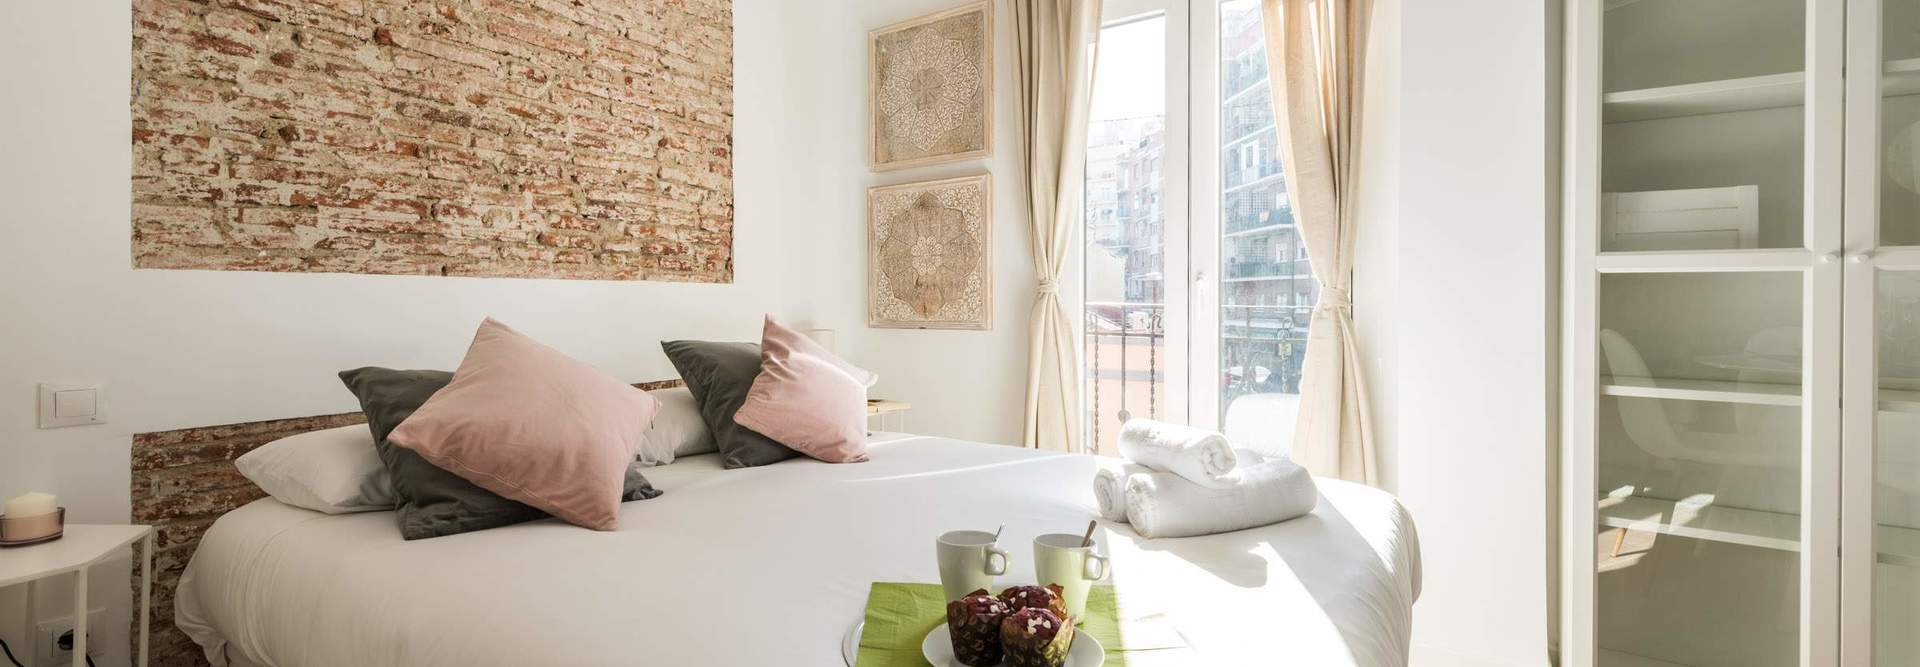 Home alquiler apartamento madrid centro mad4rent  22